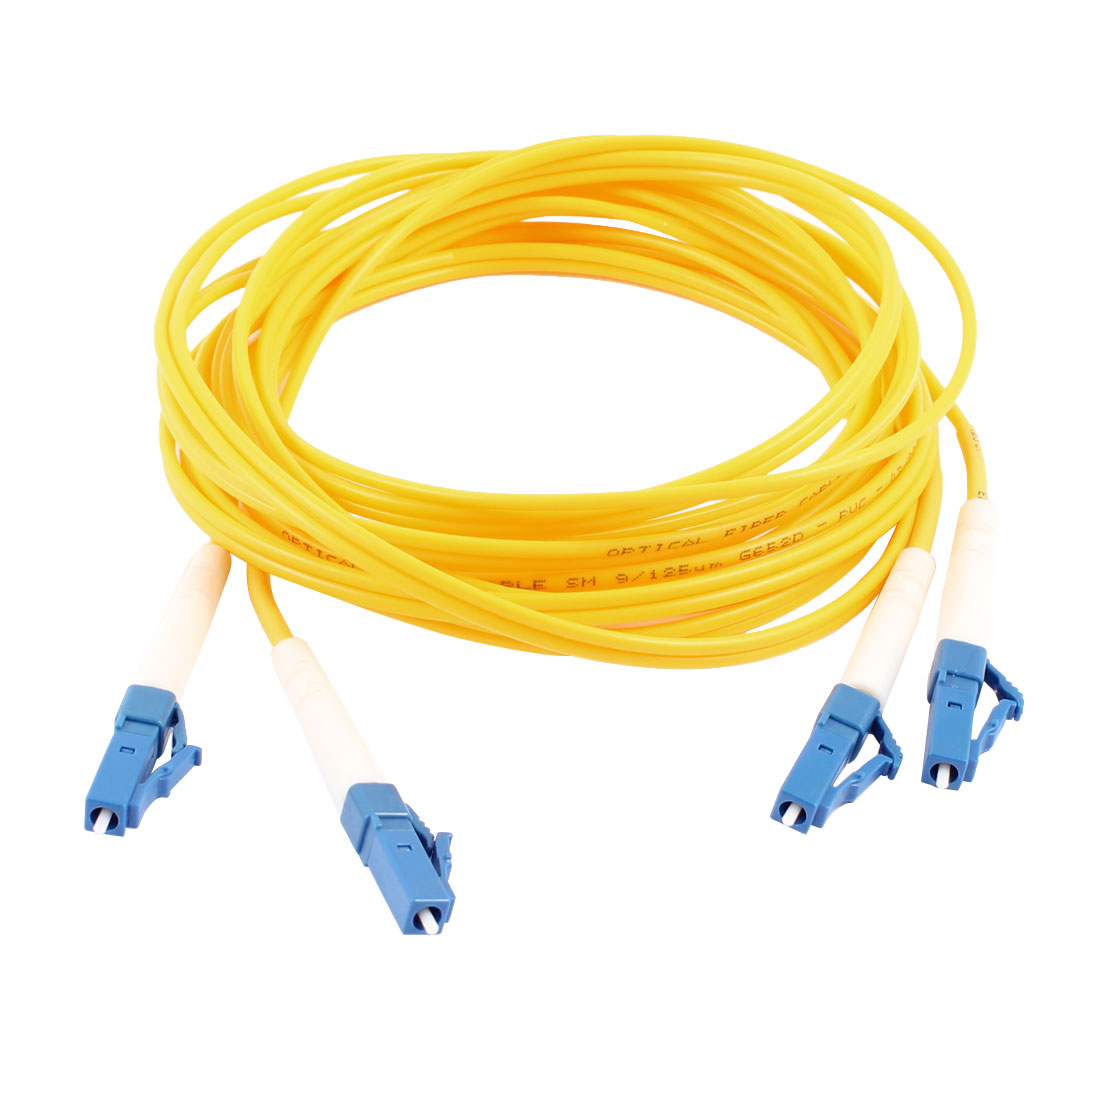 Duplex Single Mode 9/125 LC to LC Fiber Optic Patch Jump Cable Yellow 3 Meters